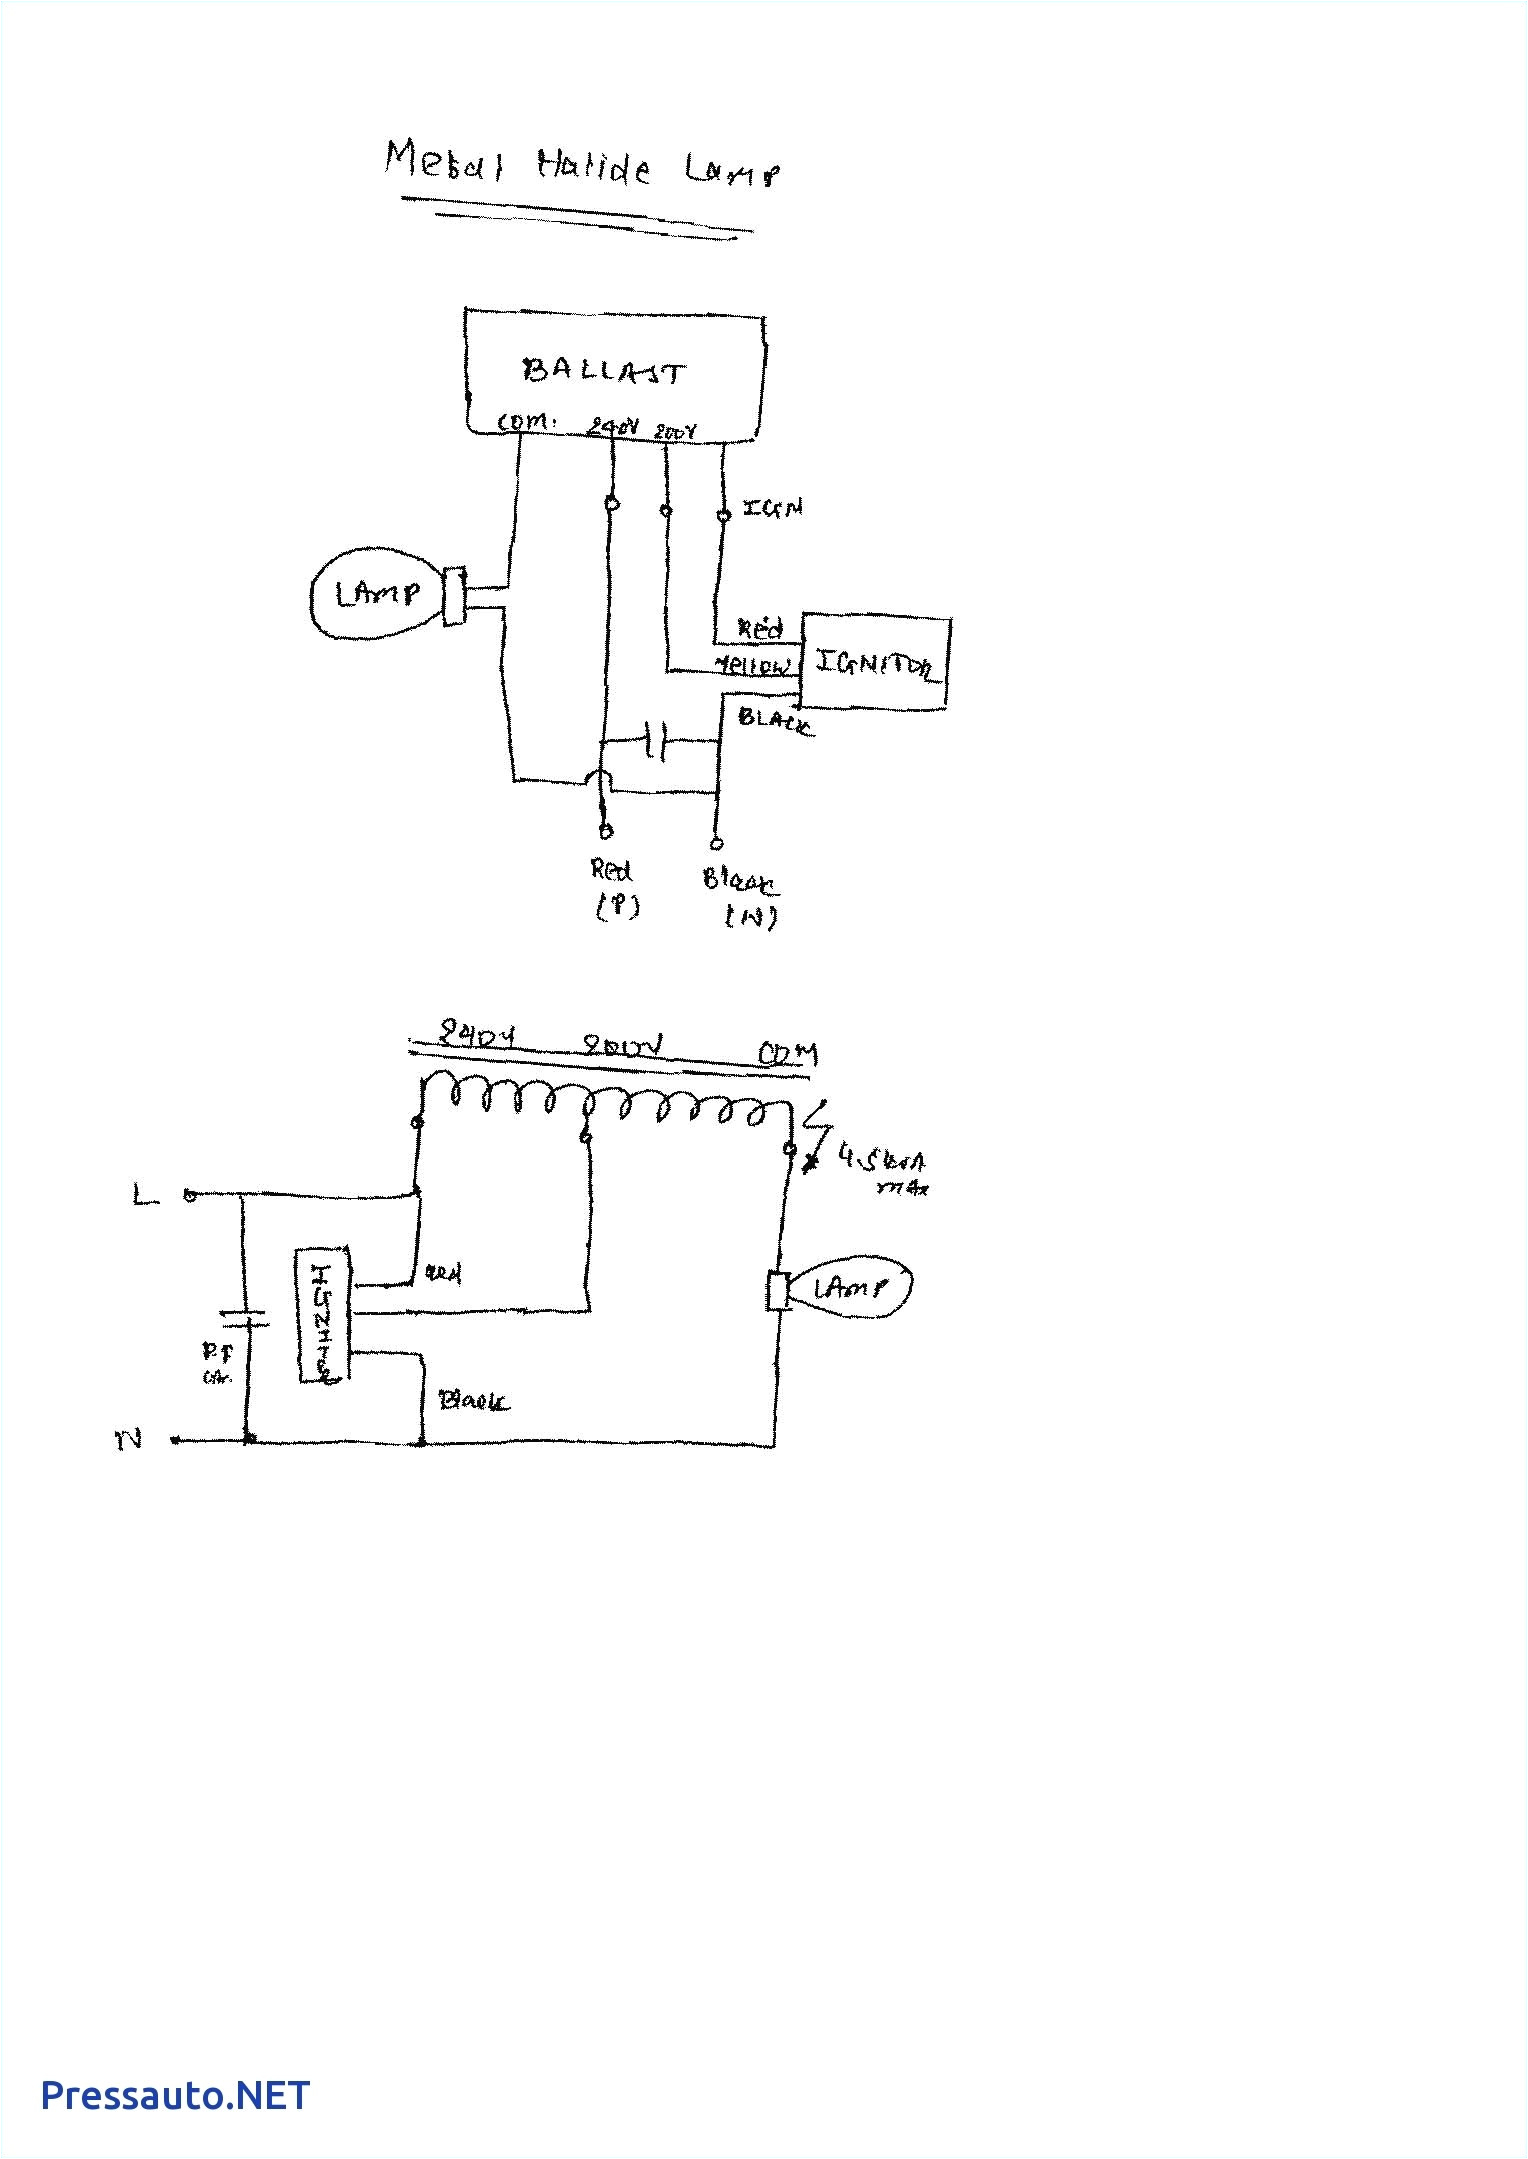 icf 2s26 h1 ld wiring diagram awesome philips advance ballast wiring diagram best wiring diagram 40